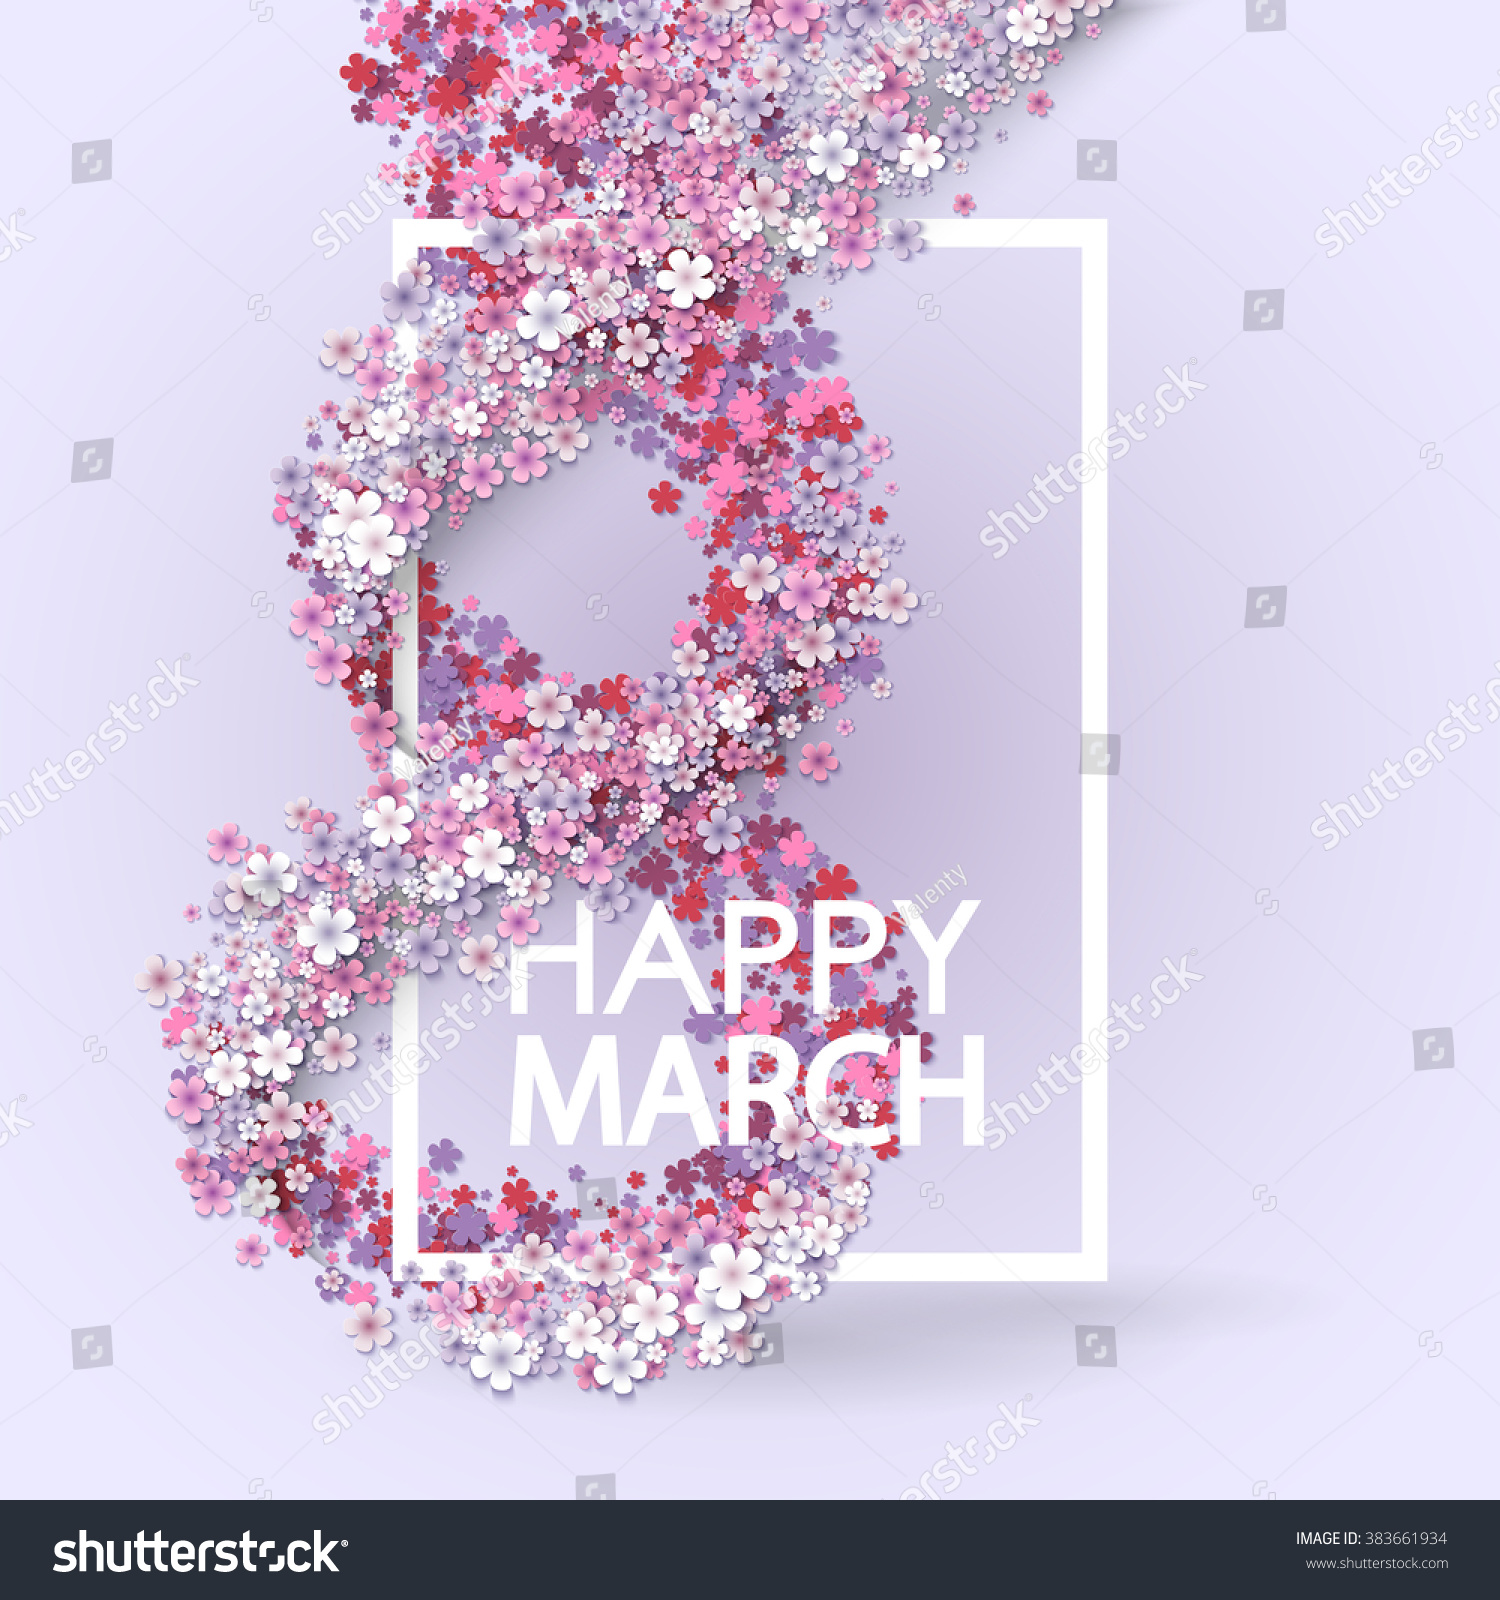 pink floral greeting card international happy stock vector pink floral greeting card international happy women s day 8 holiday background paper